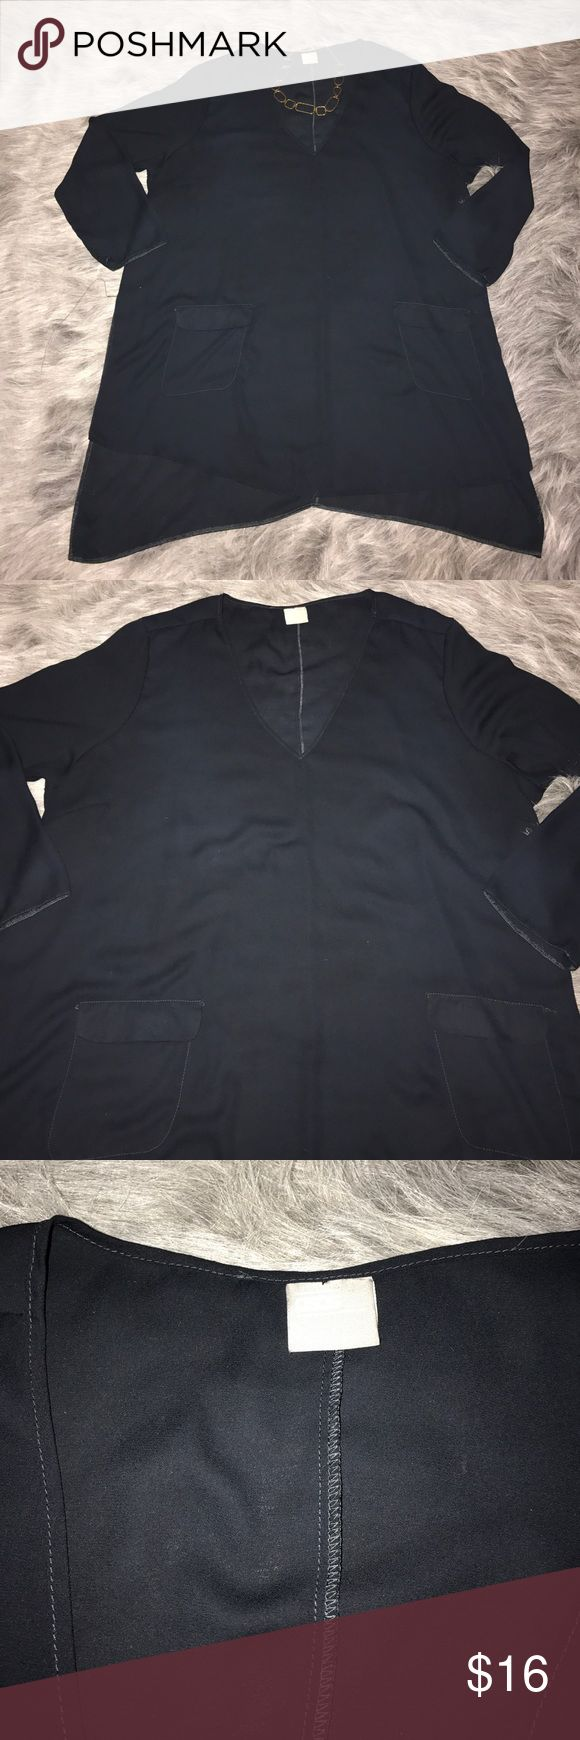 Asos plus size Black Tunic size 22 Asos Plus size Black Tunic, sheer material , two front pockets v-neck long sleeves, like new. Size 22. ASOS Dresses